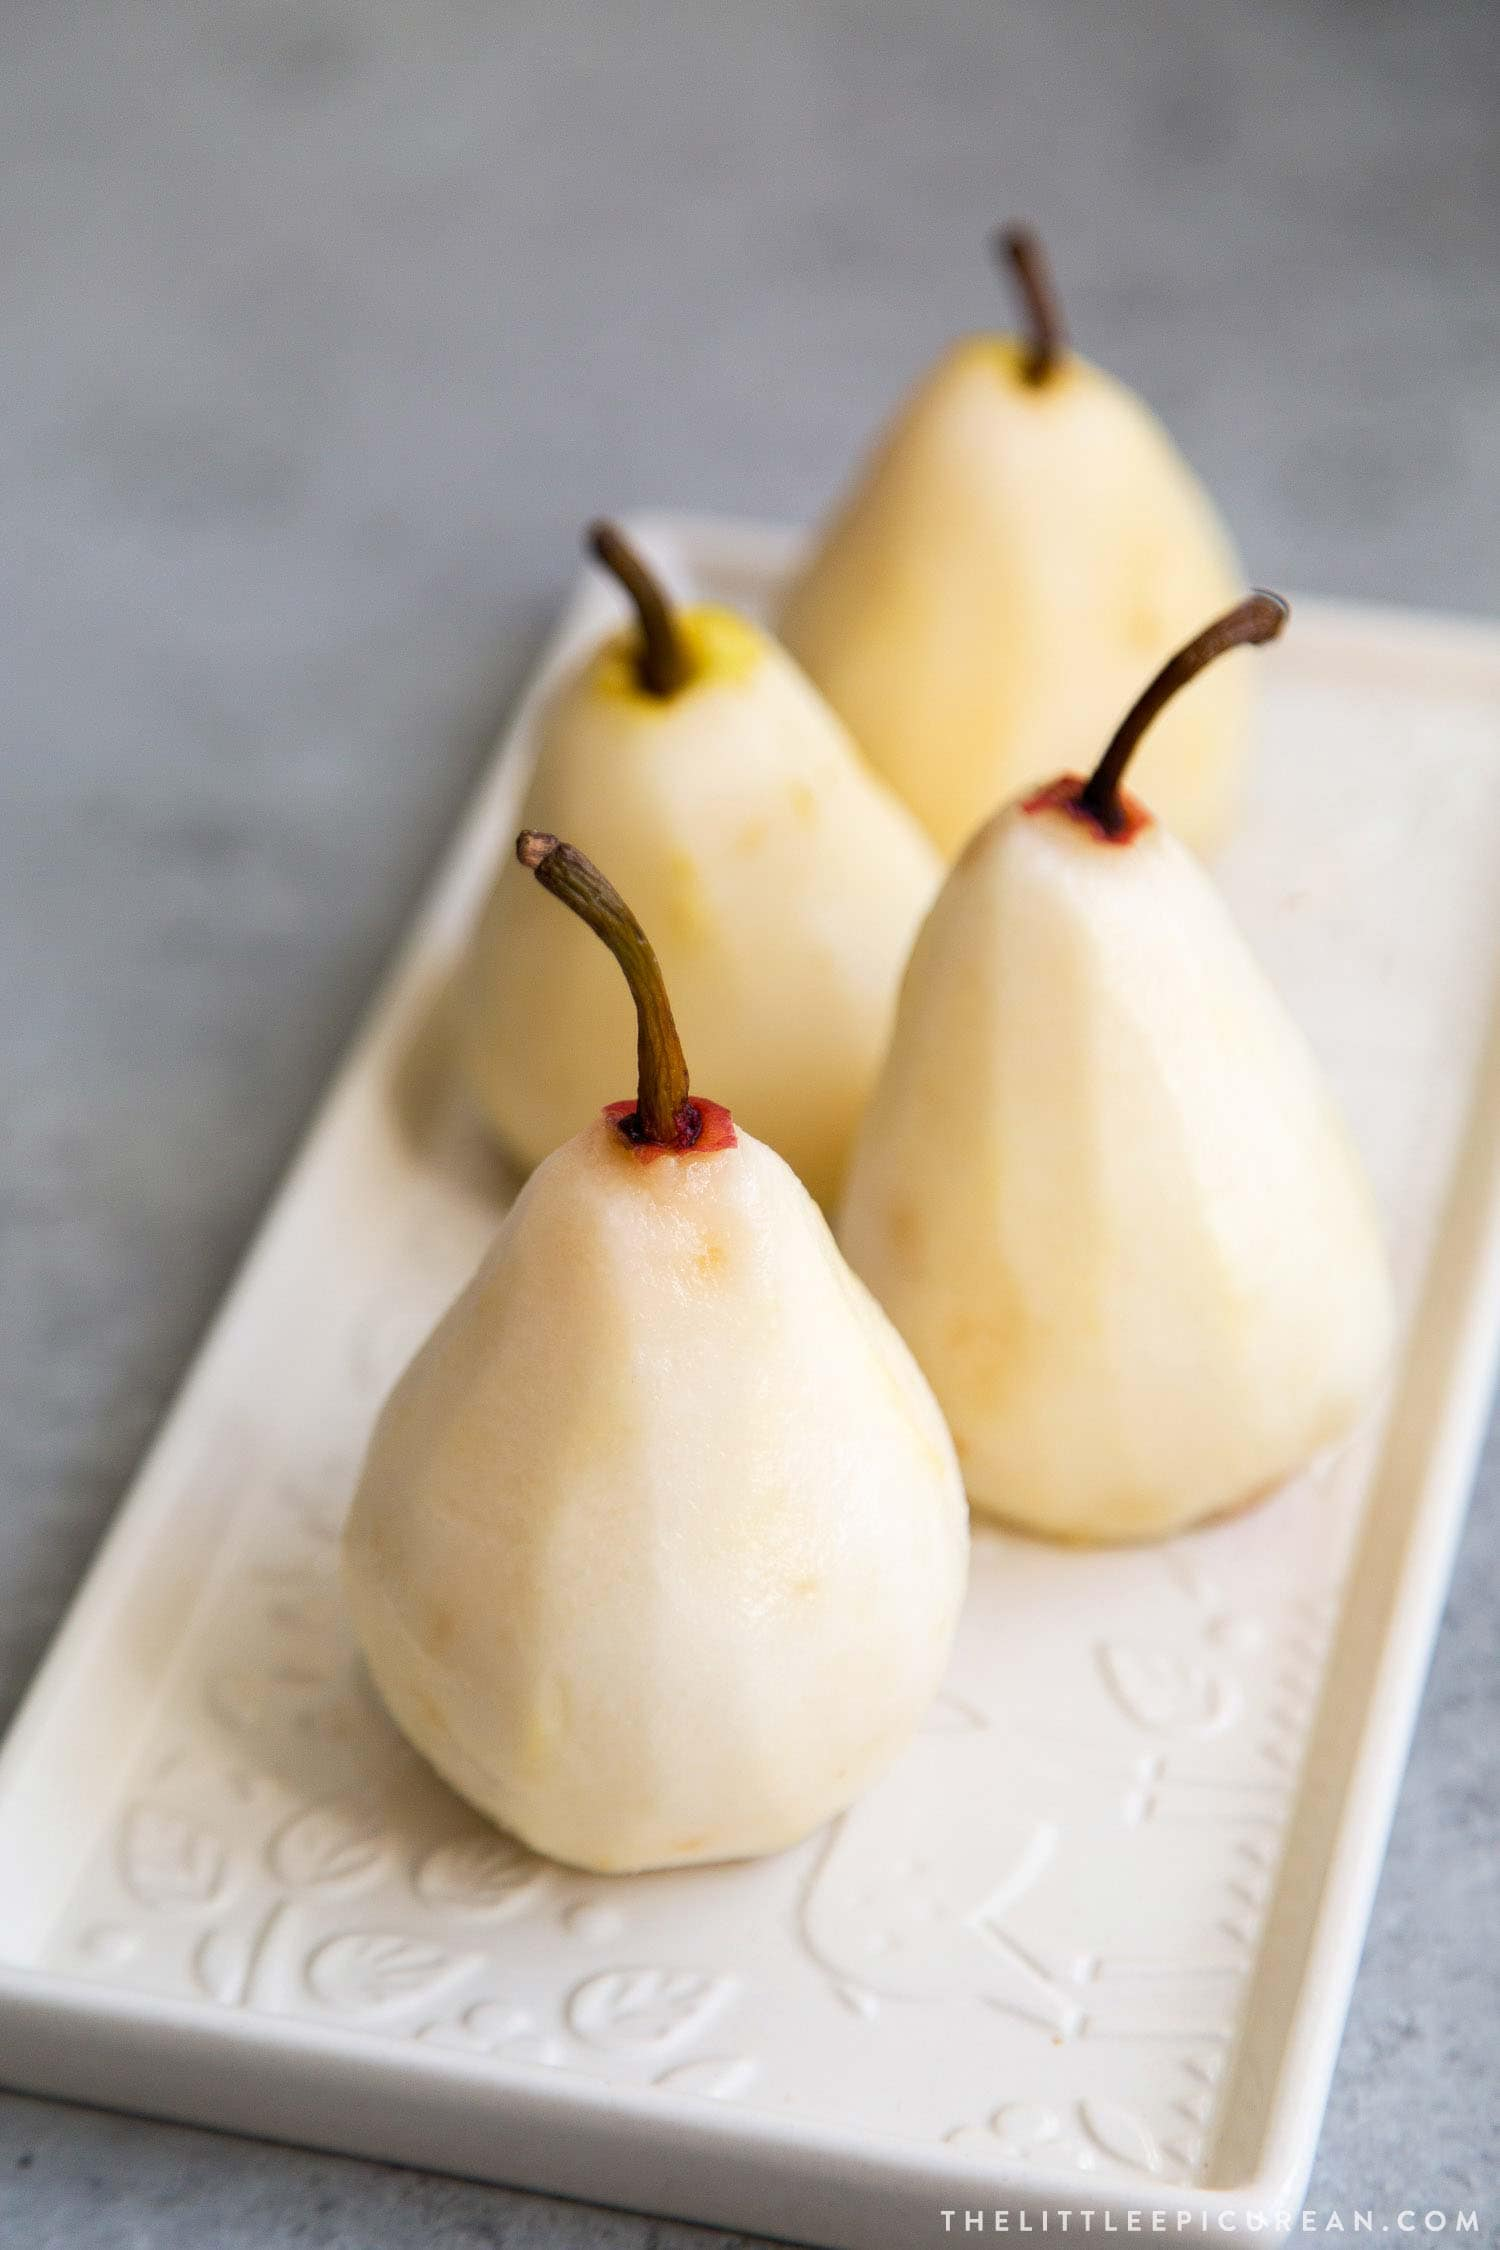 How to Poach Pears. These pears are poached in a sweet vanilla cinnamon liquid until fragrant and flavorful. They are chilled overnight before serving.